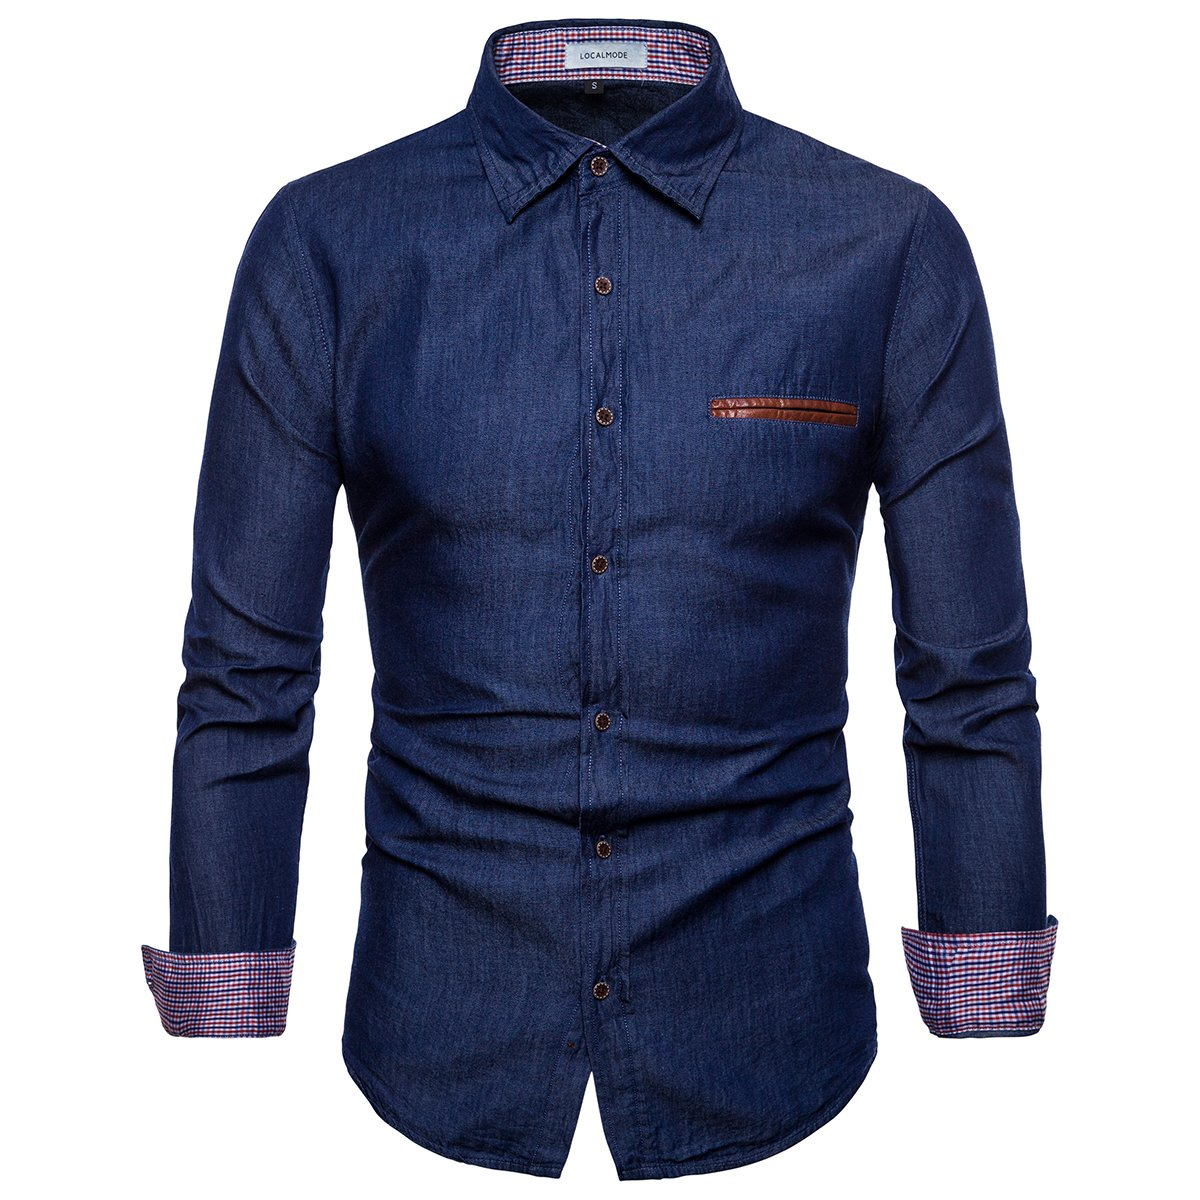 LOCALMODE Men's Casual Dress Shirt Button Down Shirts Fashion Denim Shirt Dark Blue L